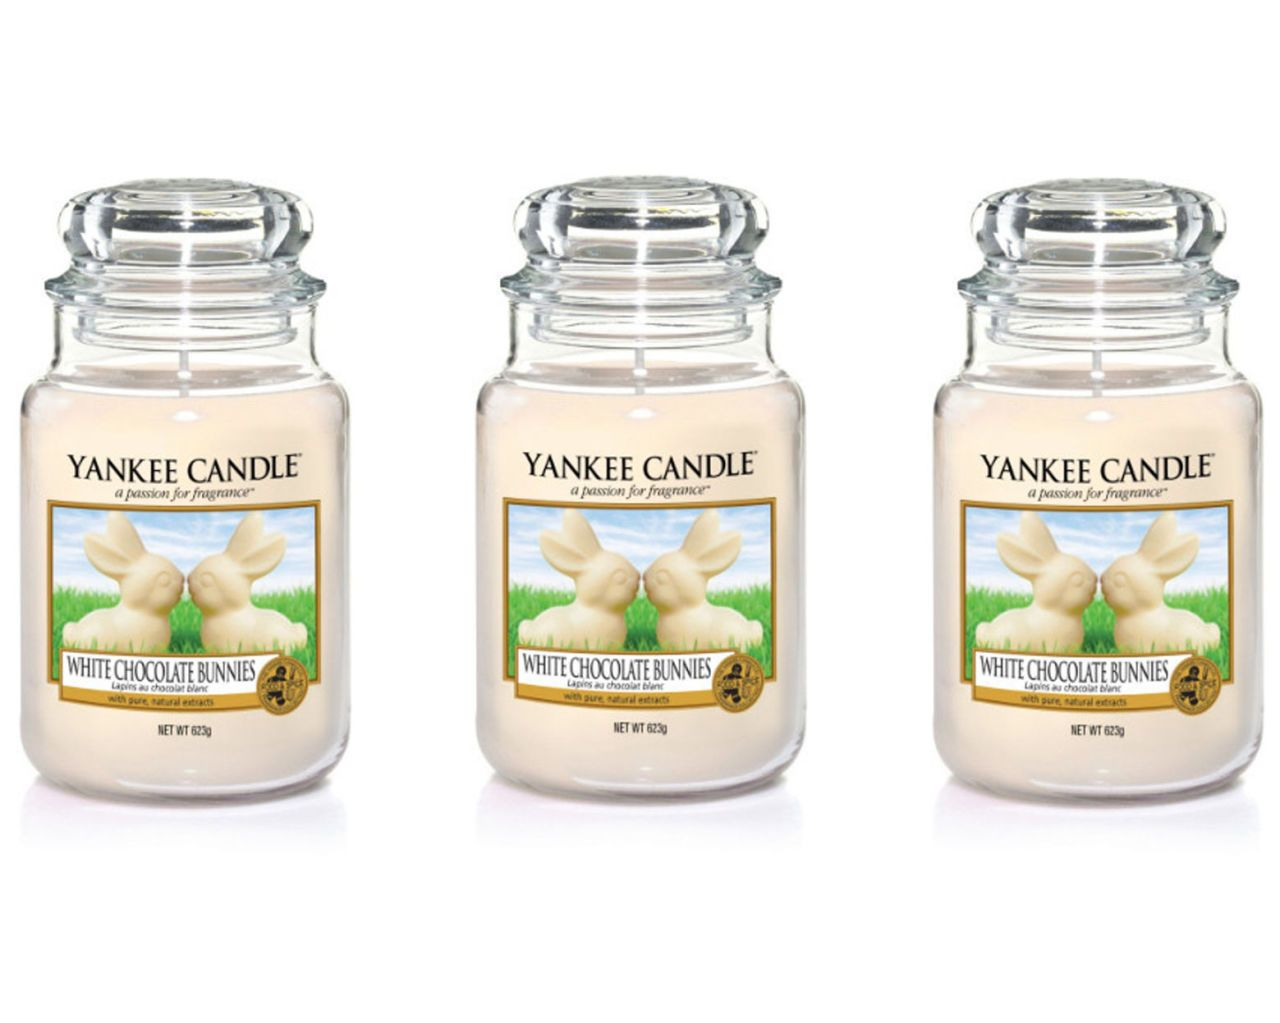 Yankee Candle releases 'White Chocolate Bunnies' scent for Easter